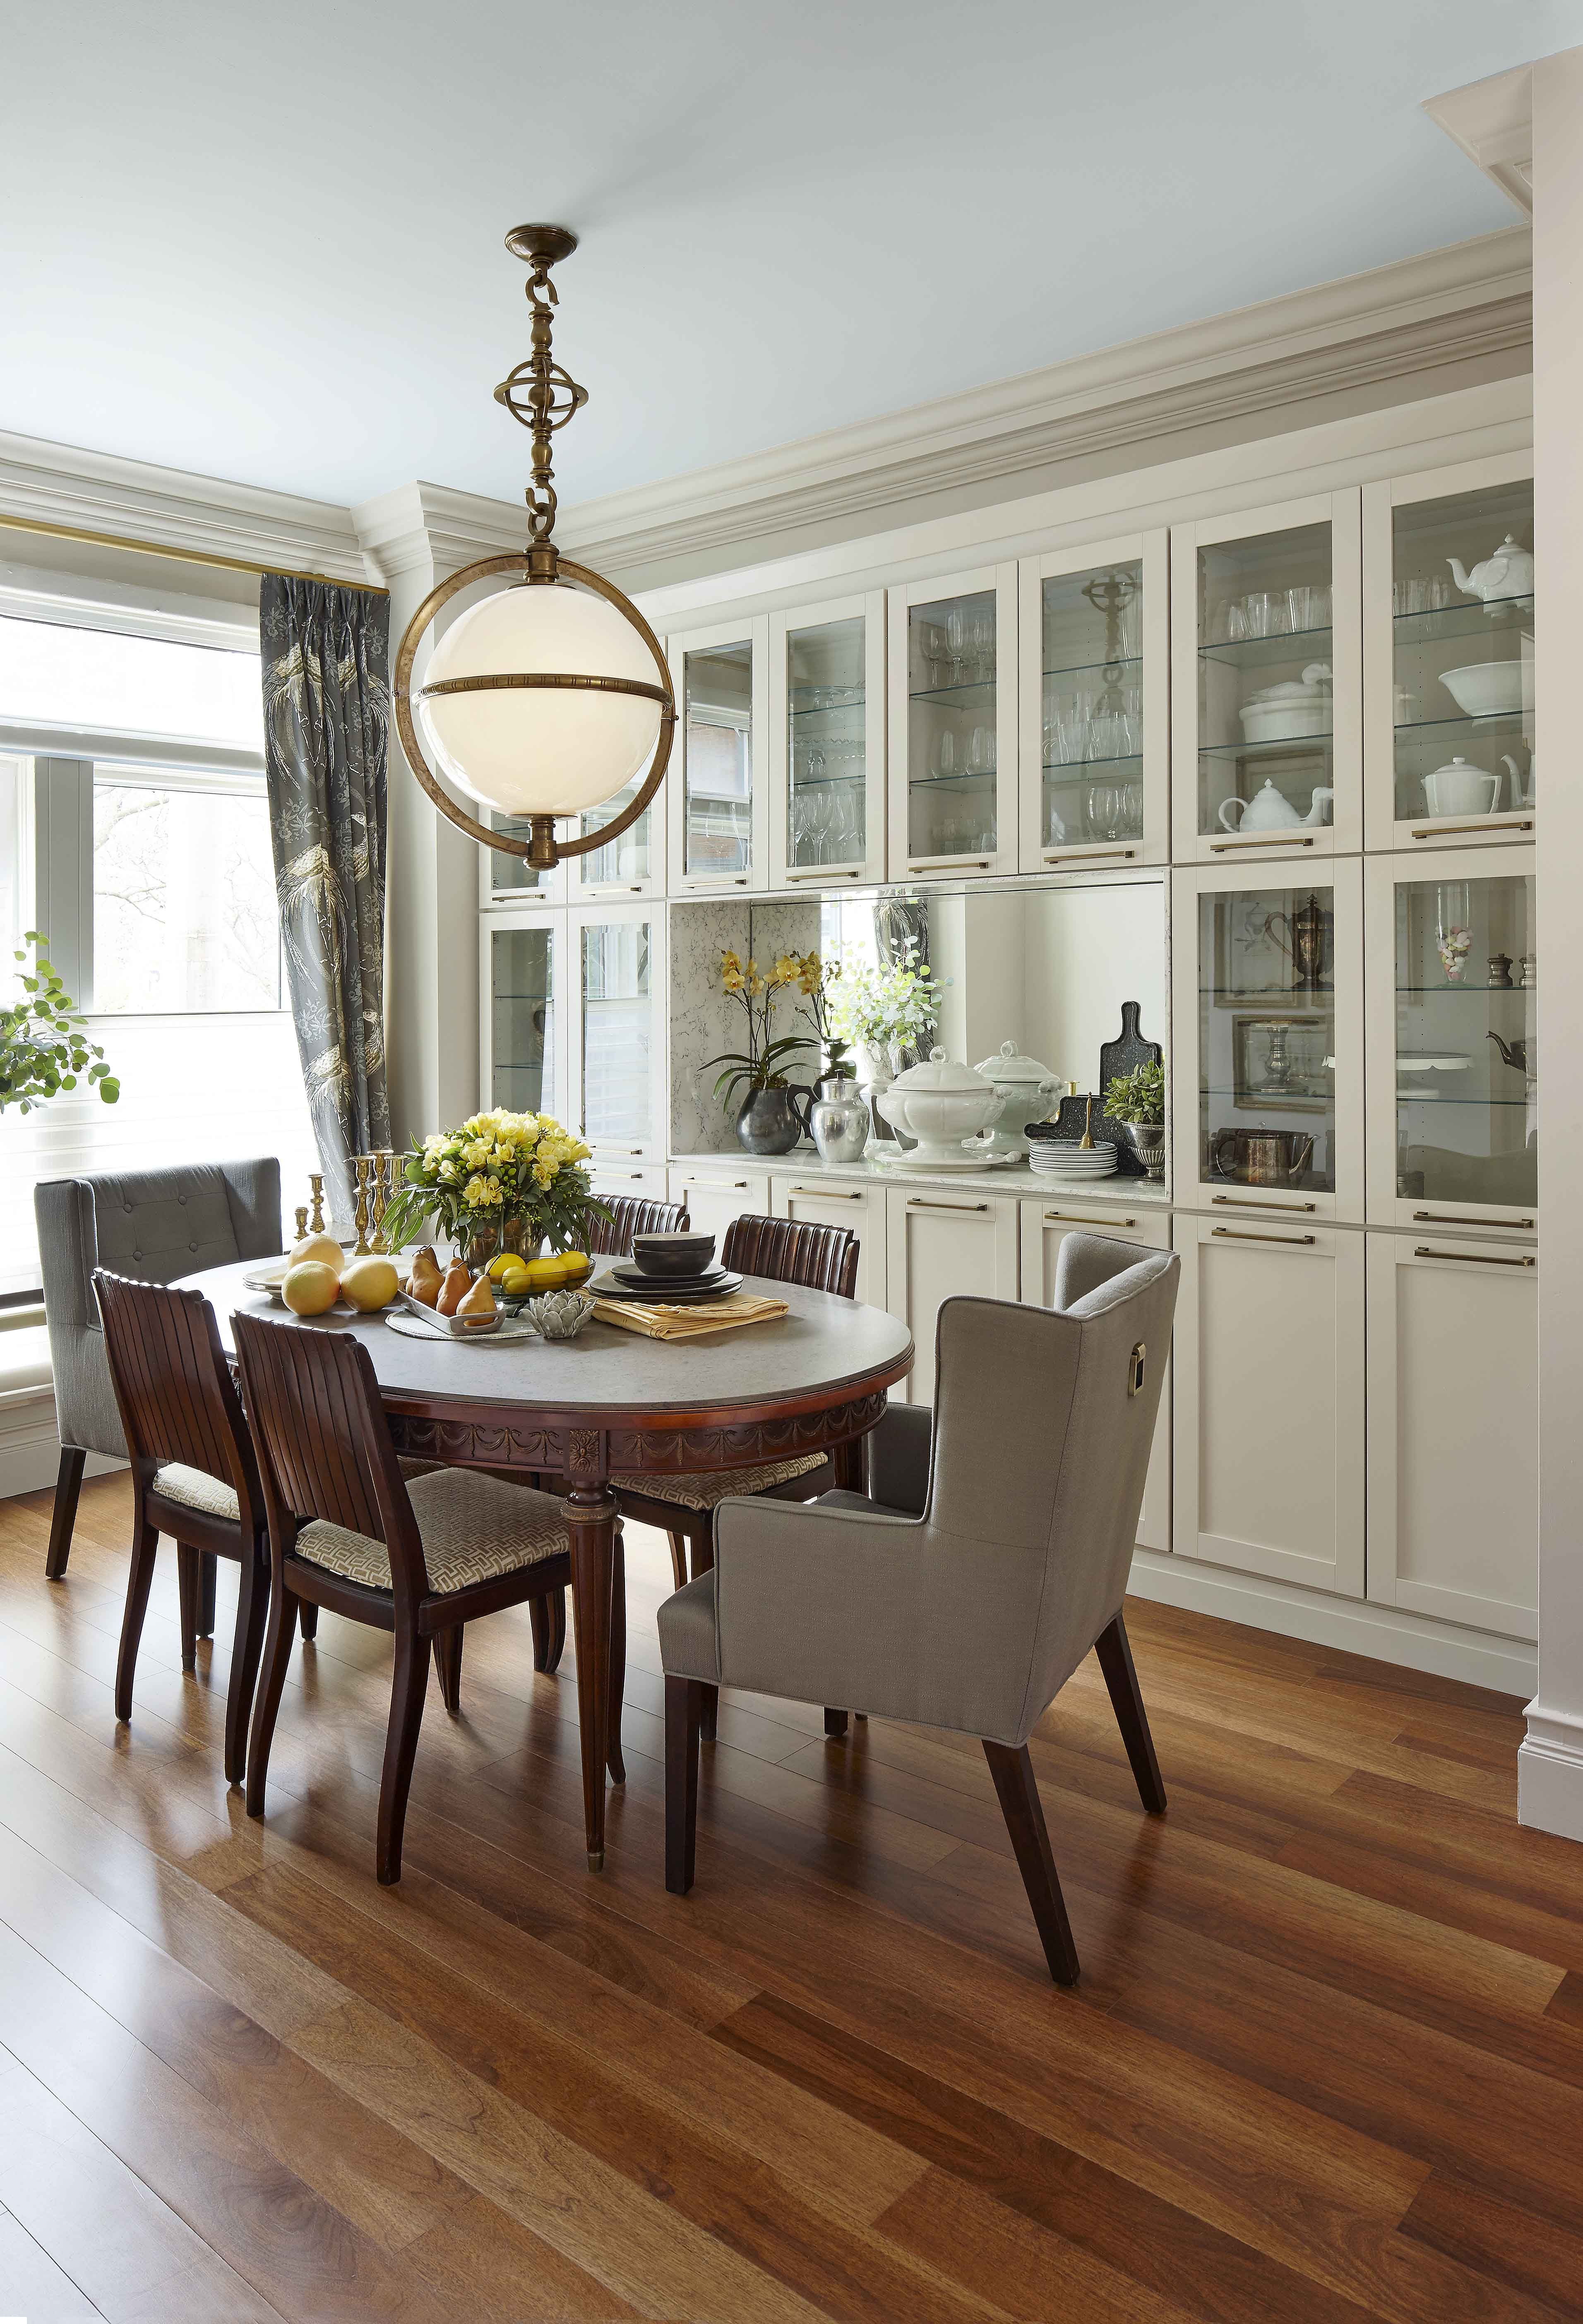 Before and After  Feast Your Eyes on This Dining Room Makeover. Before and After  Feast Your Eyes on This Dining Room Makeover